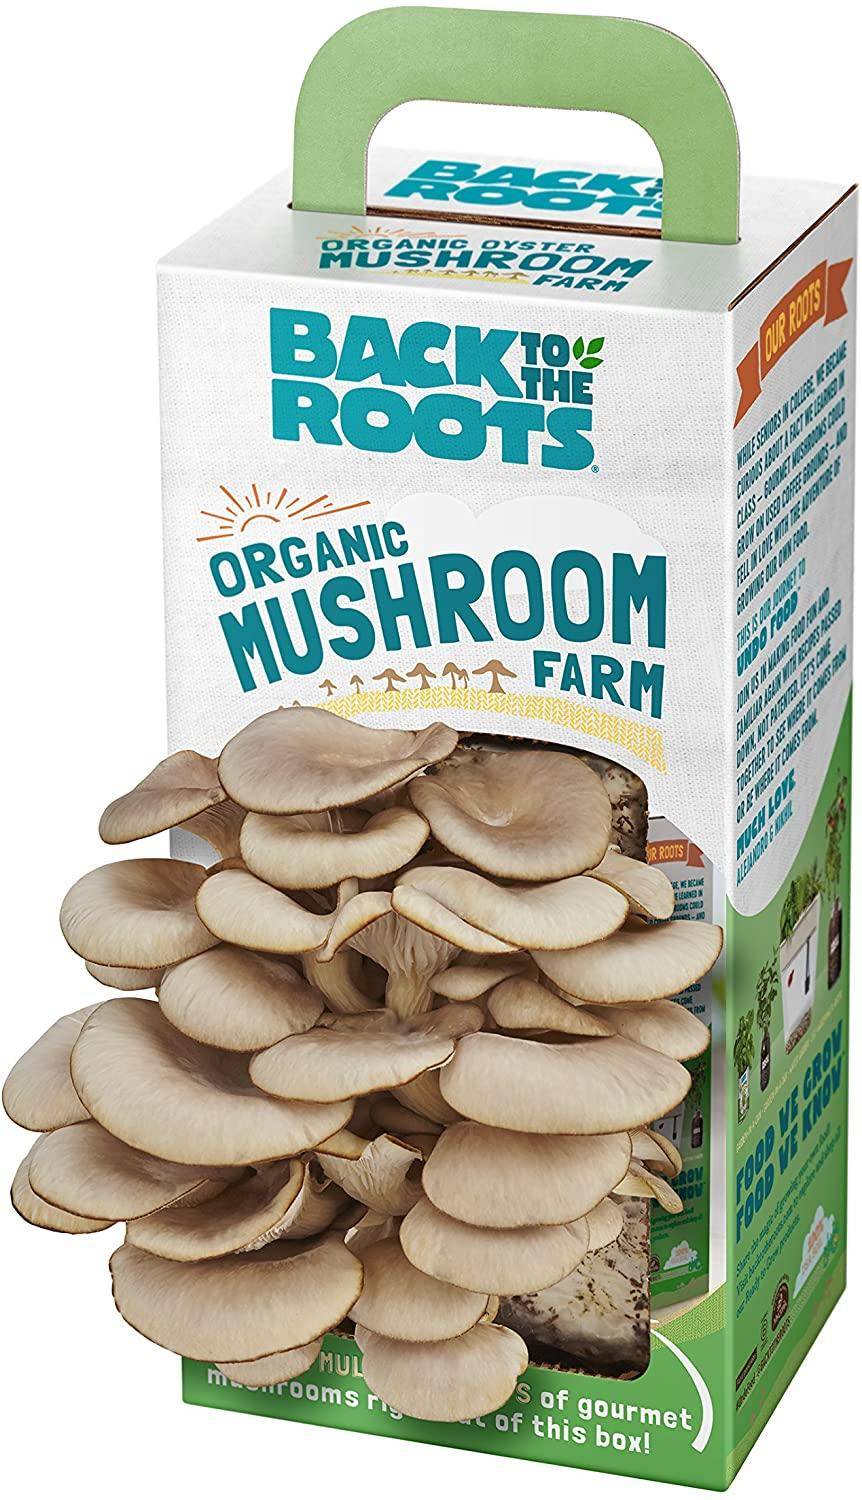 Back To The Roots Organic Mushroom Growing Kit, $33 @amazon.com (Harvest Gourmet Oyster Mushrooms In 10 days)